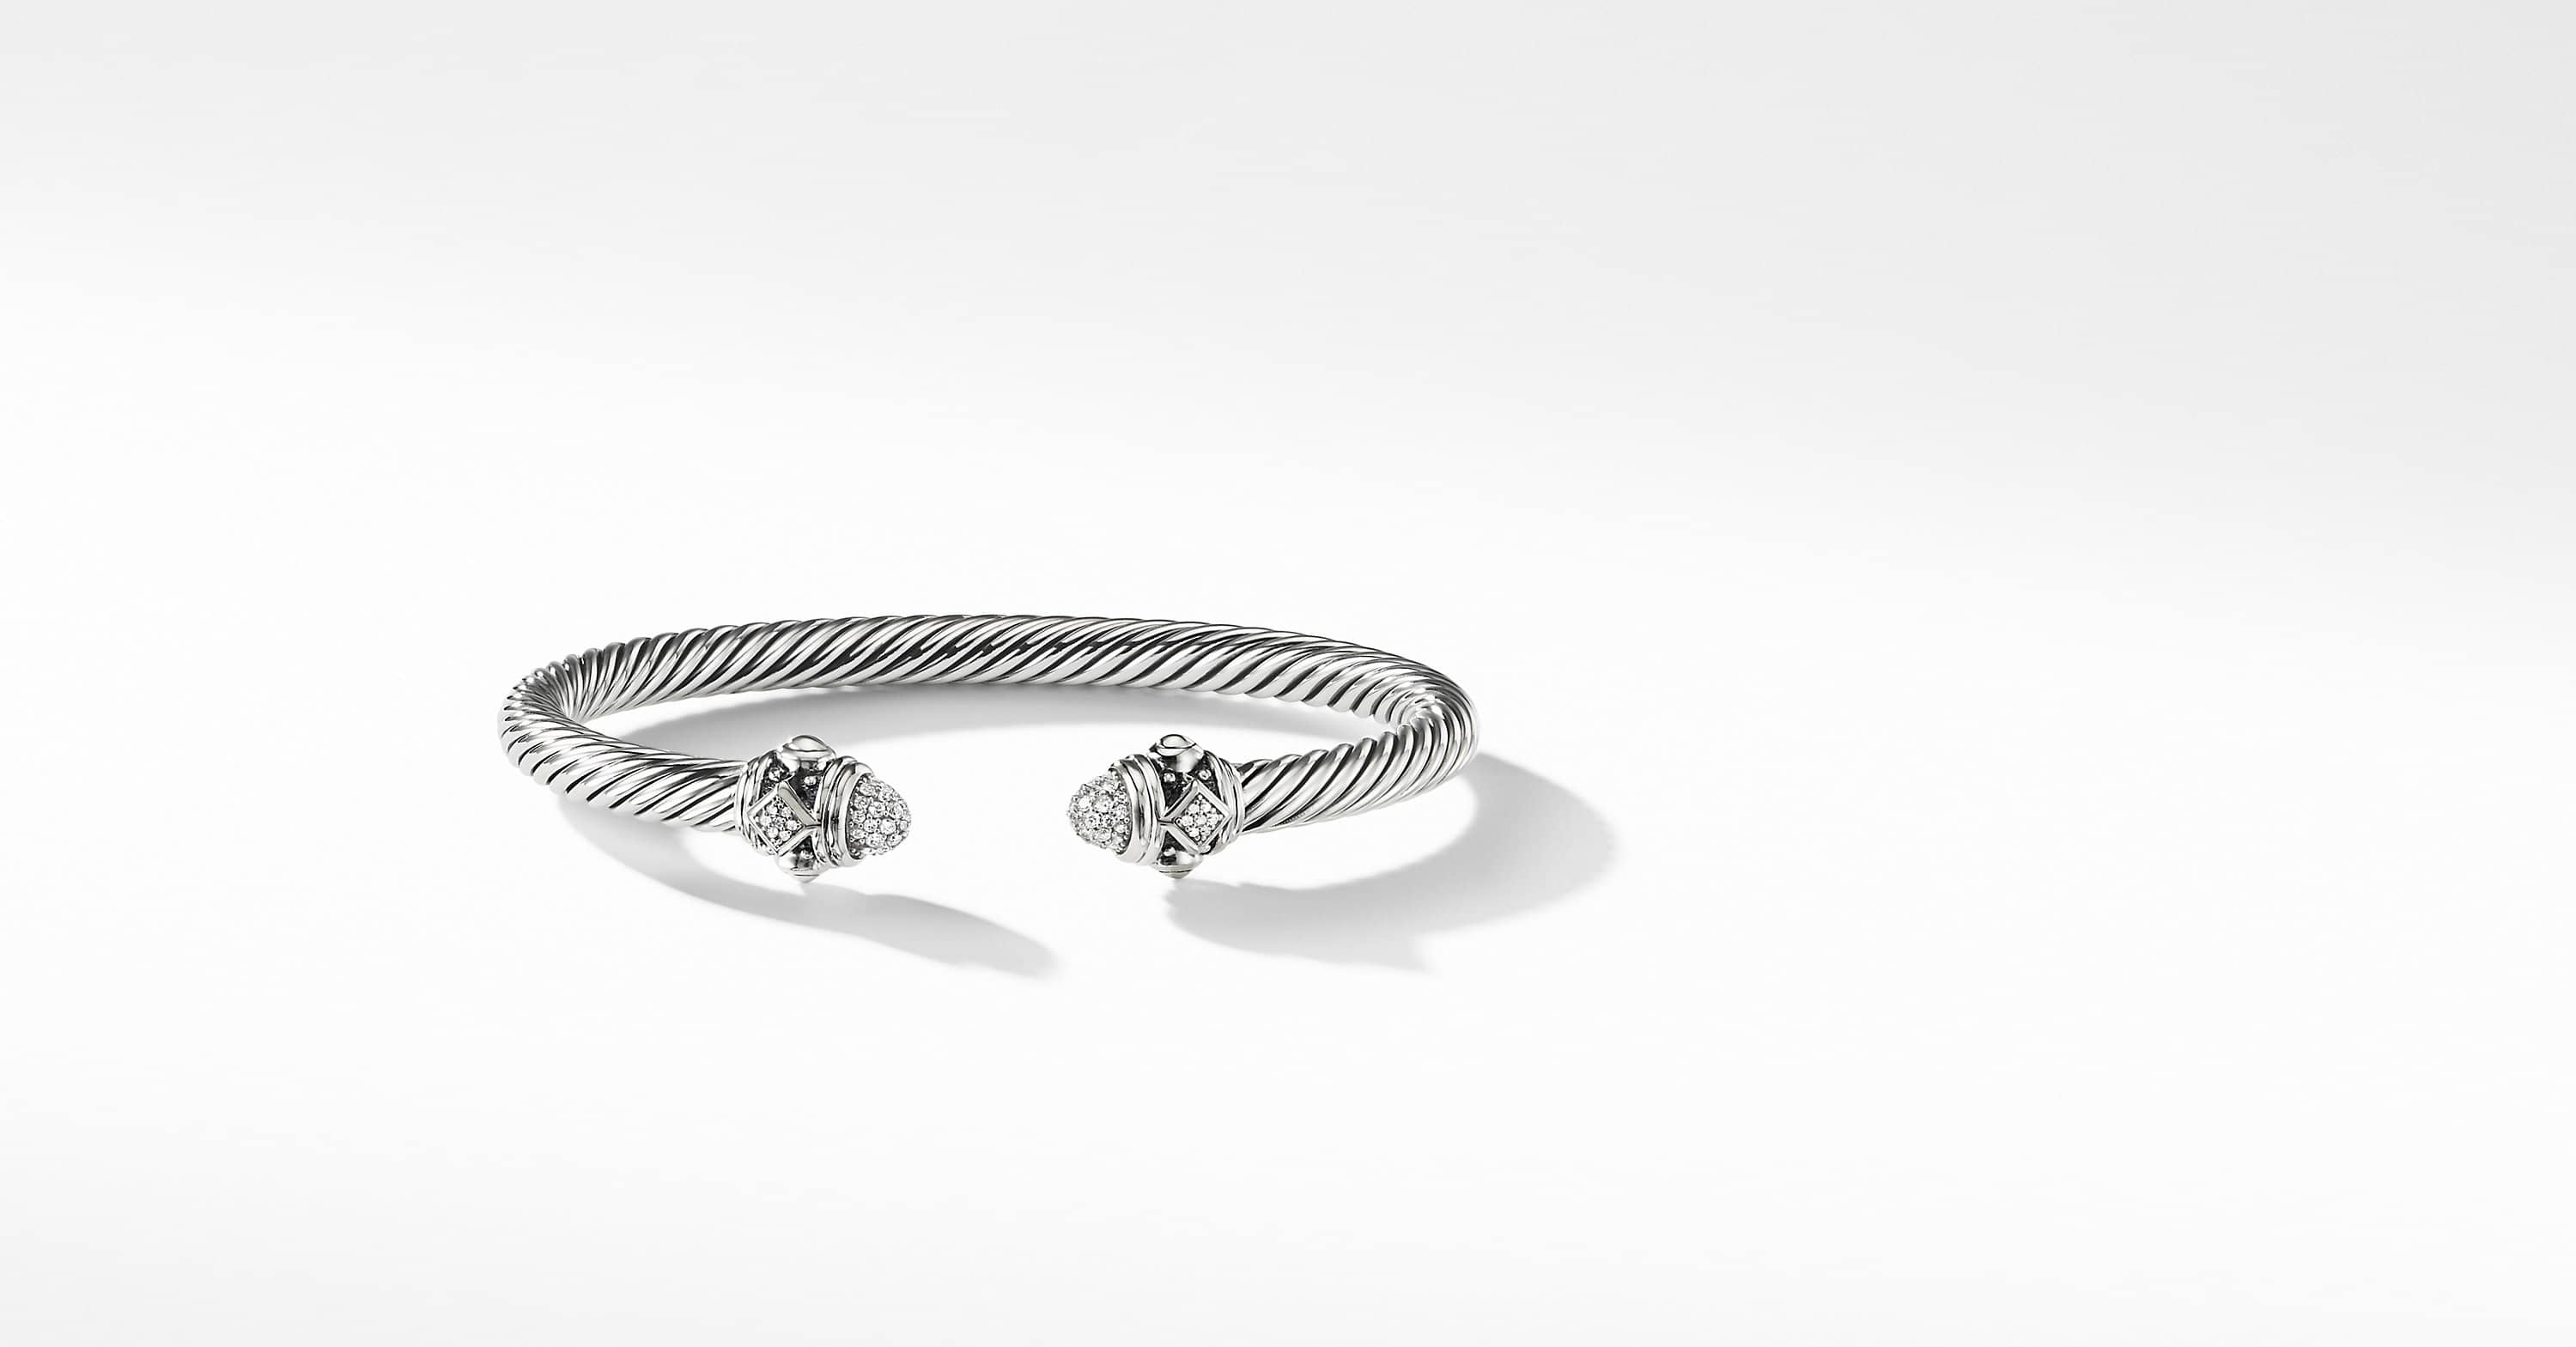 Renaissance Bracelet with Diamonds in Silver, 5mm